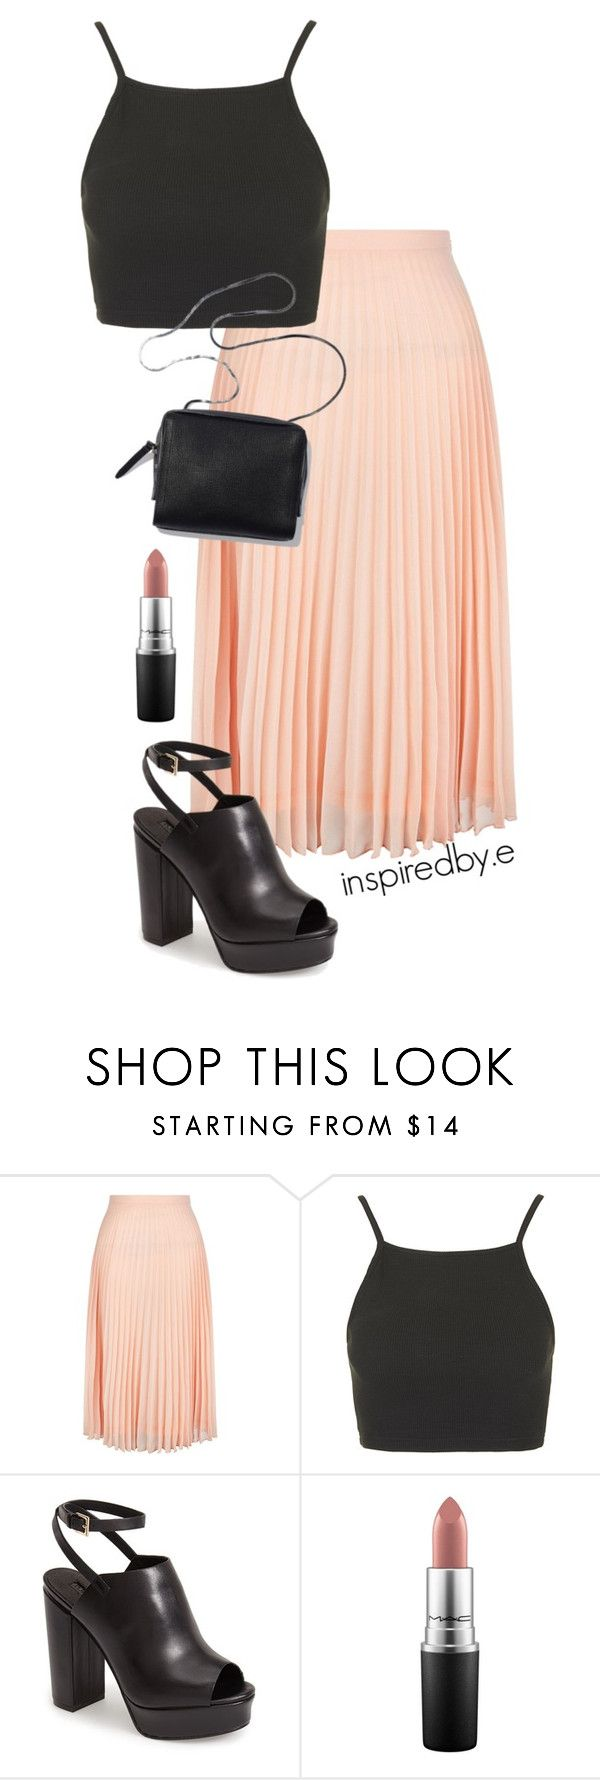 """Lion King"" by emmakiis on Polyvore featuring New Look, Topshop, 3.1 Phillip Lim and MAC Cosmetics"